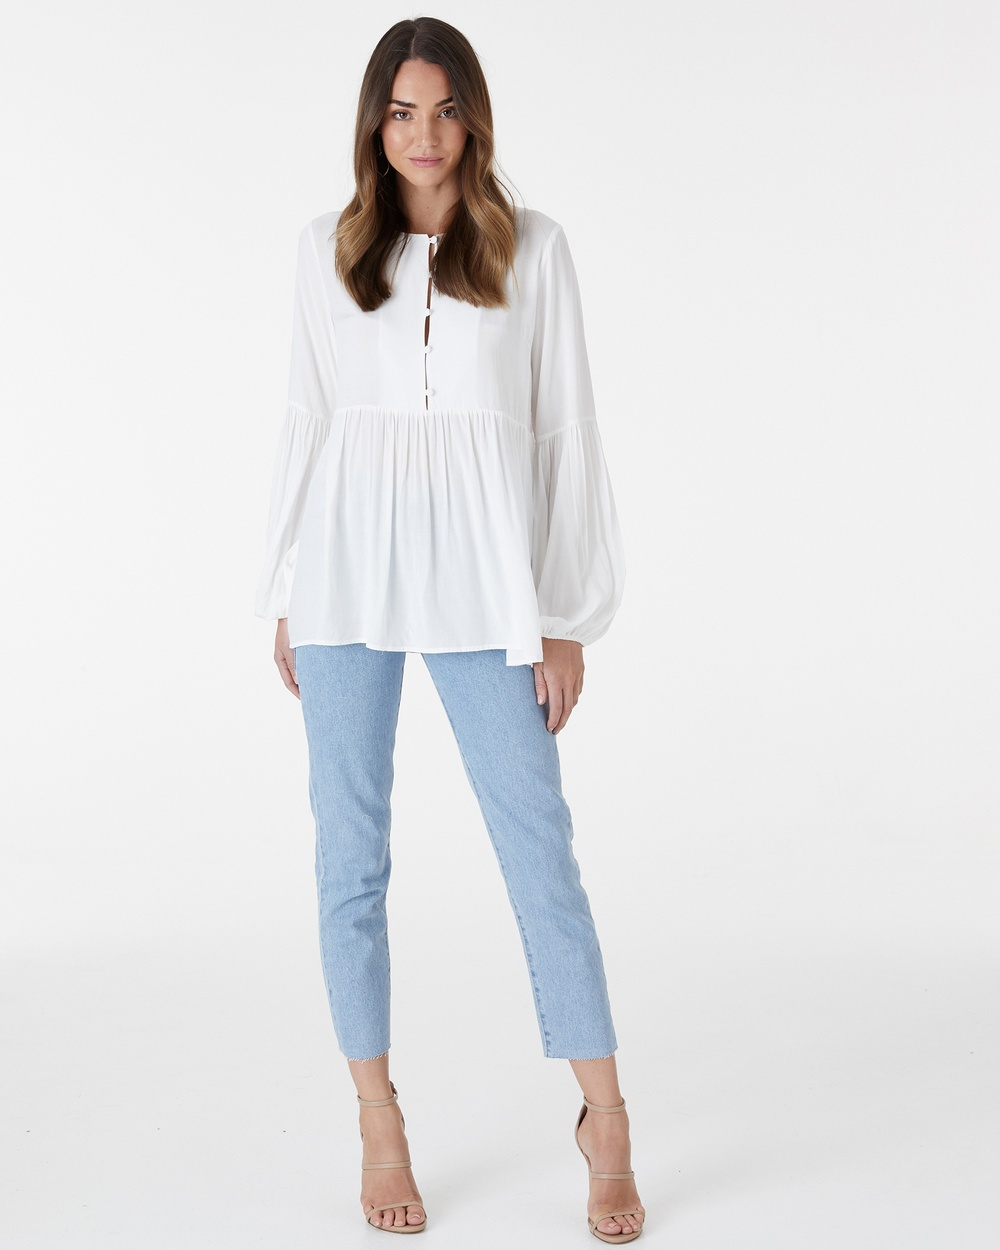 Everly Collective Rendezvous Top Tops White Rendezvous Top